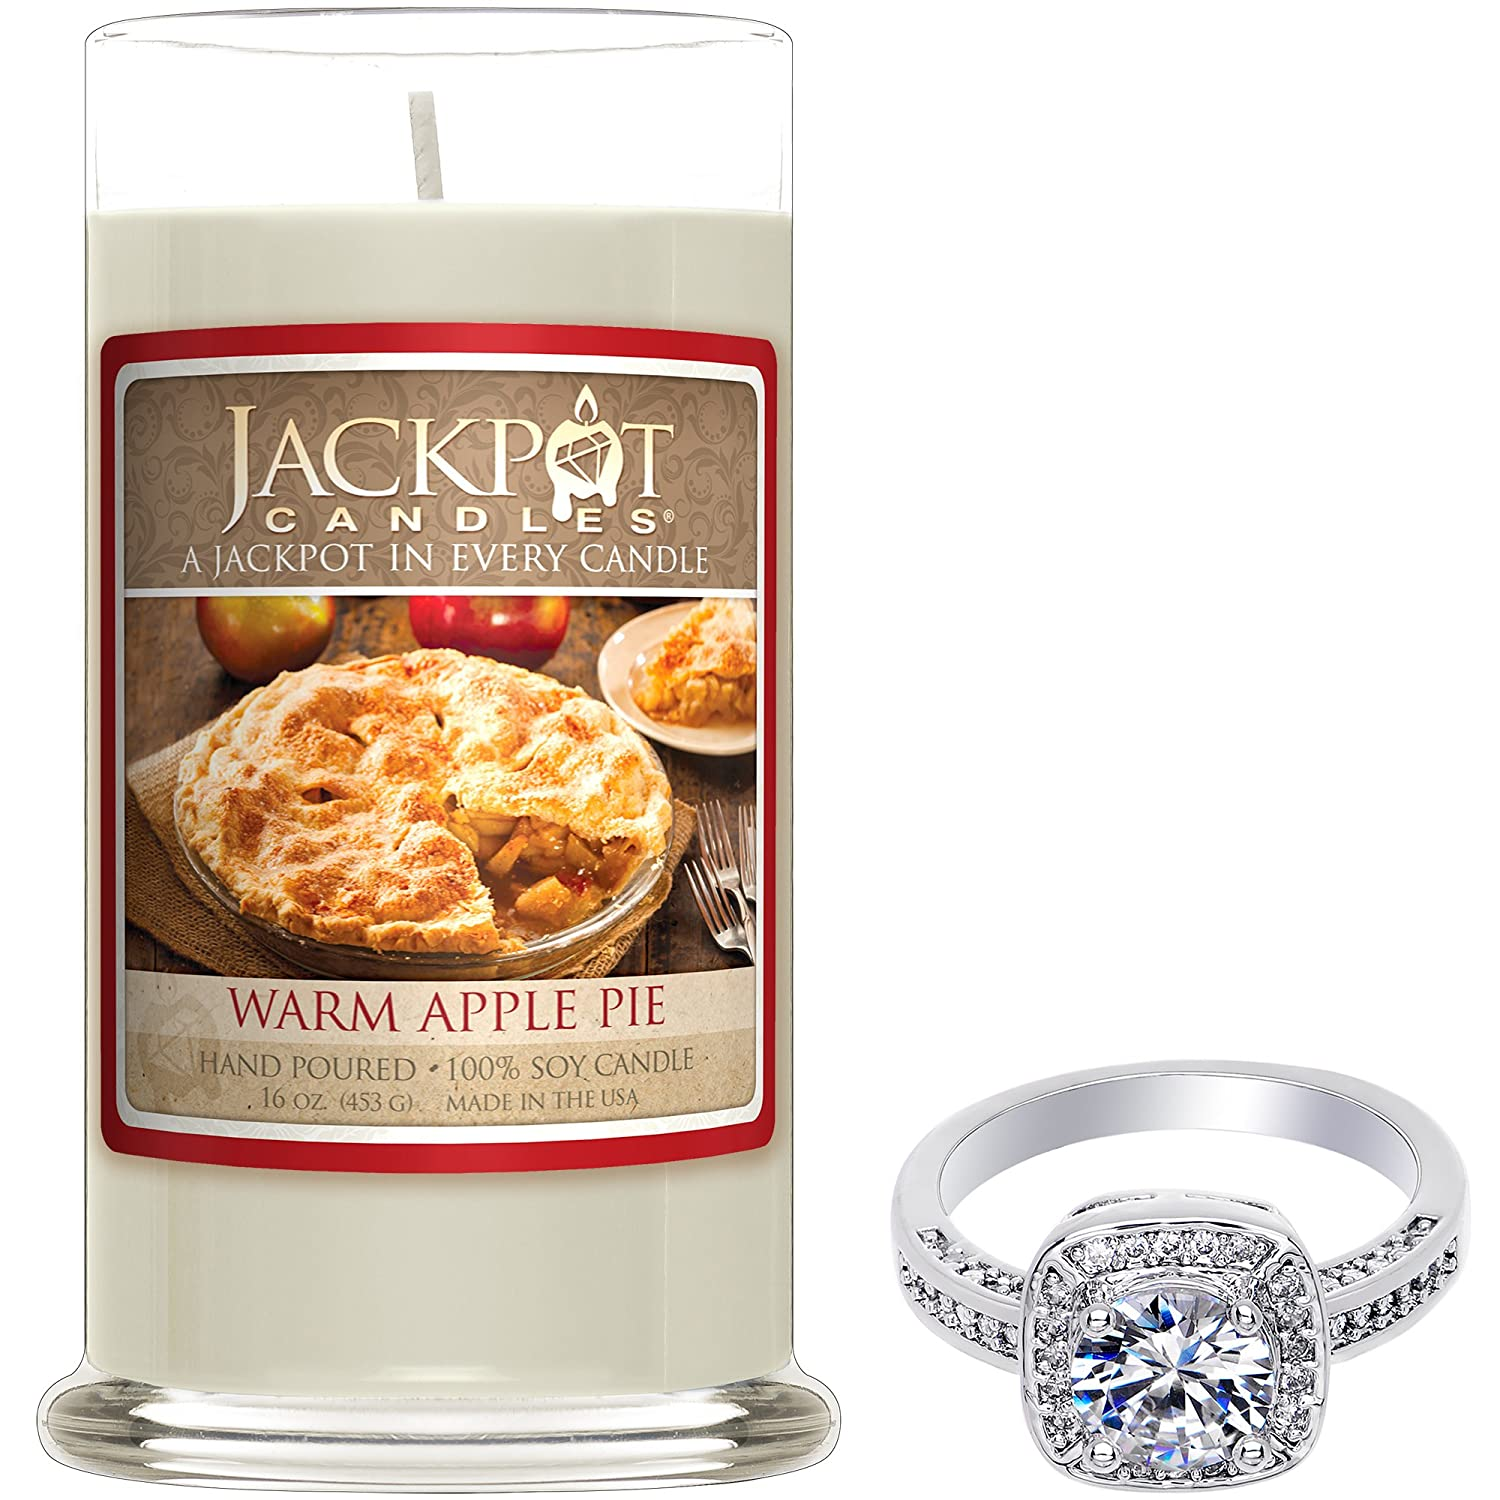 Warm Apple Pie Candle with Ring Inside (Surprise Jewelry Valued at $15 to $5, 000) Ring Size 7 Jackpot Candles CAN-300-RNG-7